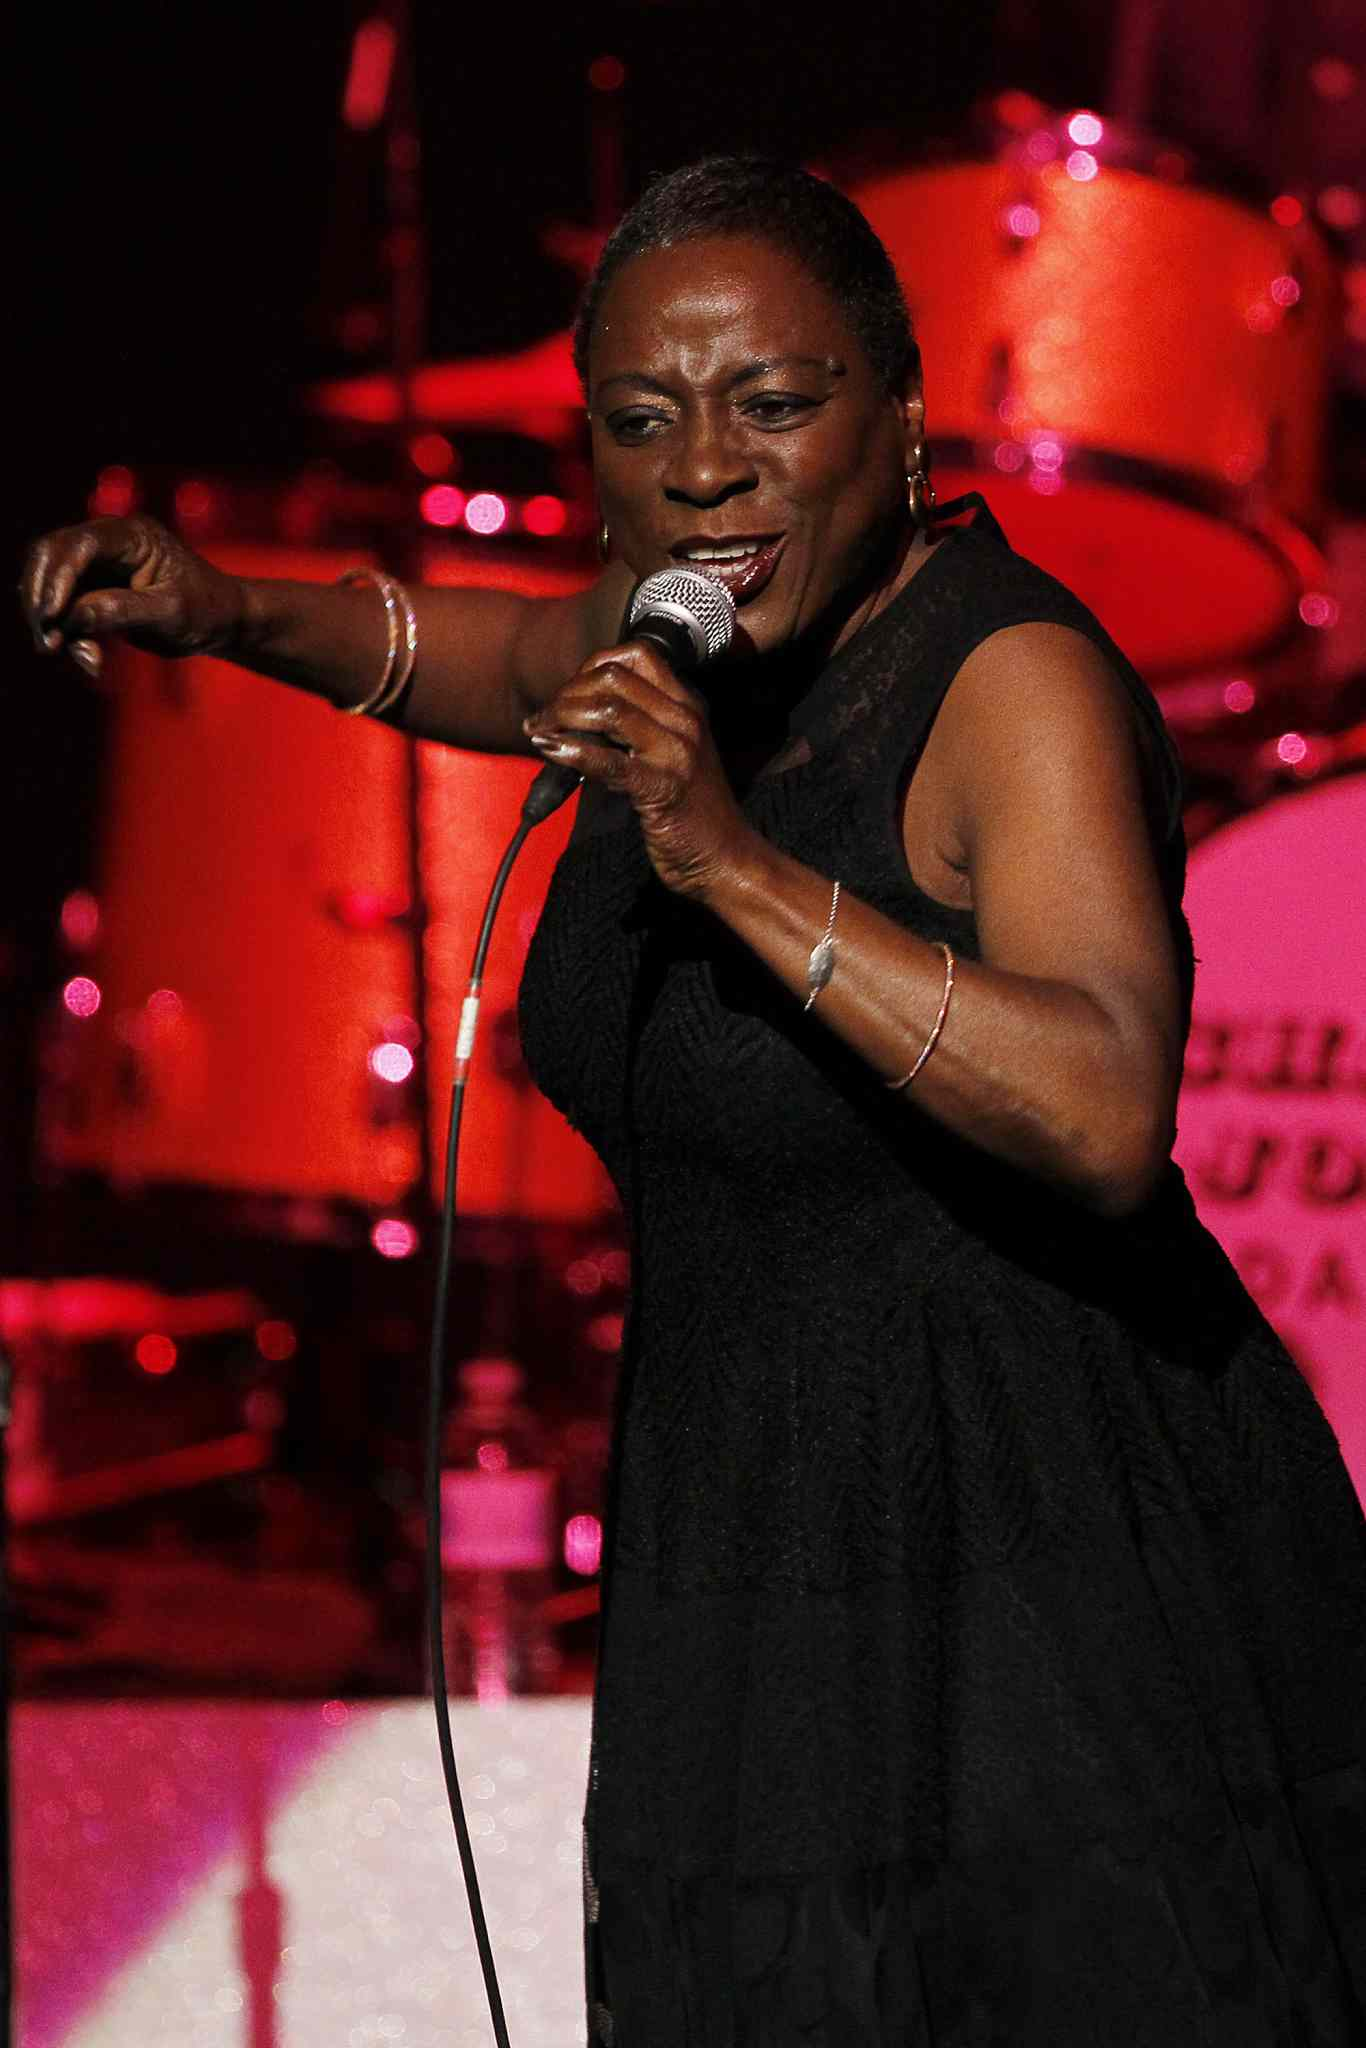 Sharon Jones and The Dap-Kings perform at the Burton Cummings Theatre.